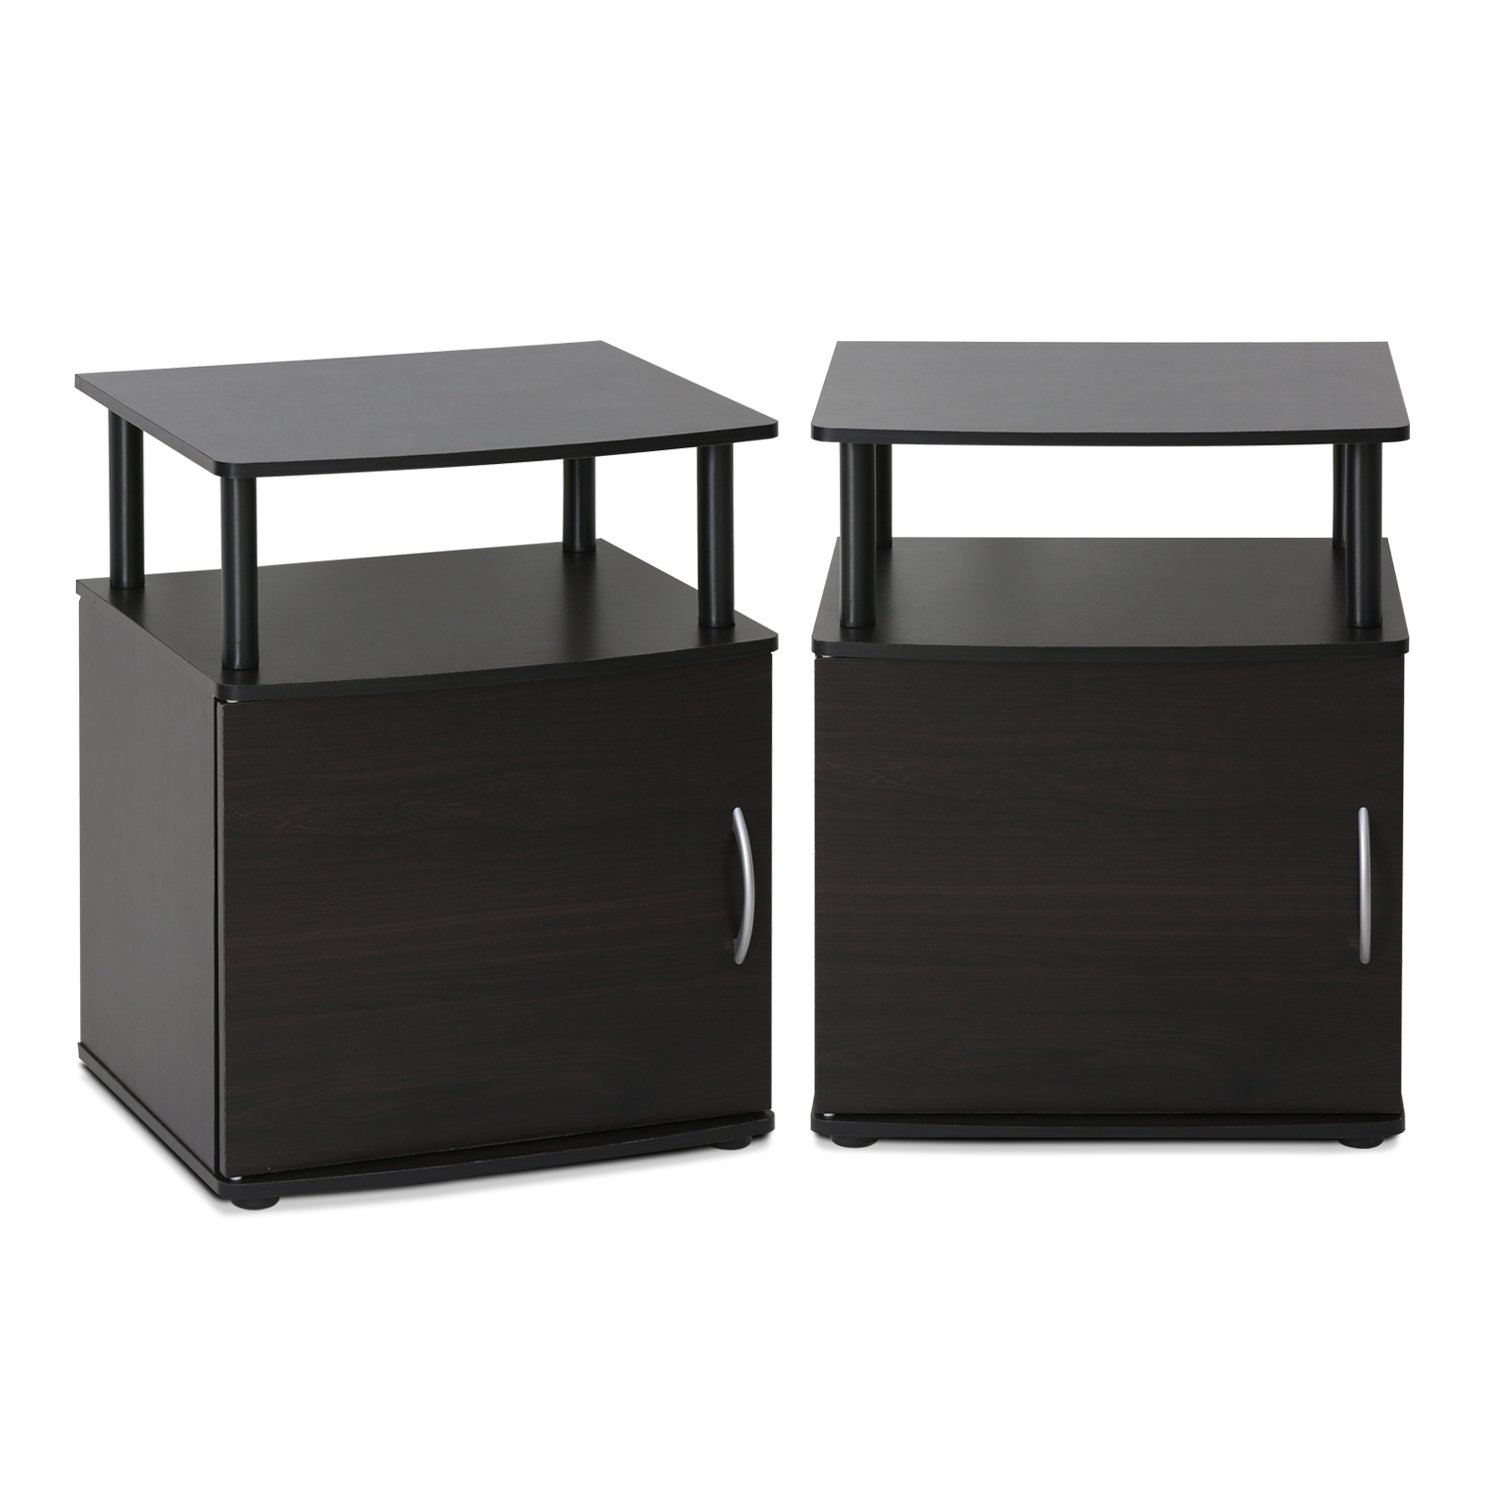 Furinno 2-15114BKW End Table, Two, Black Wood by Furinno